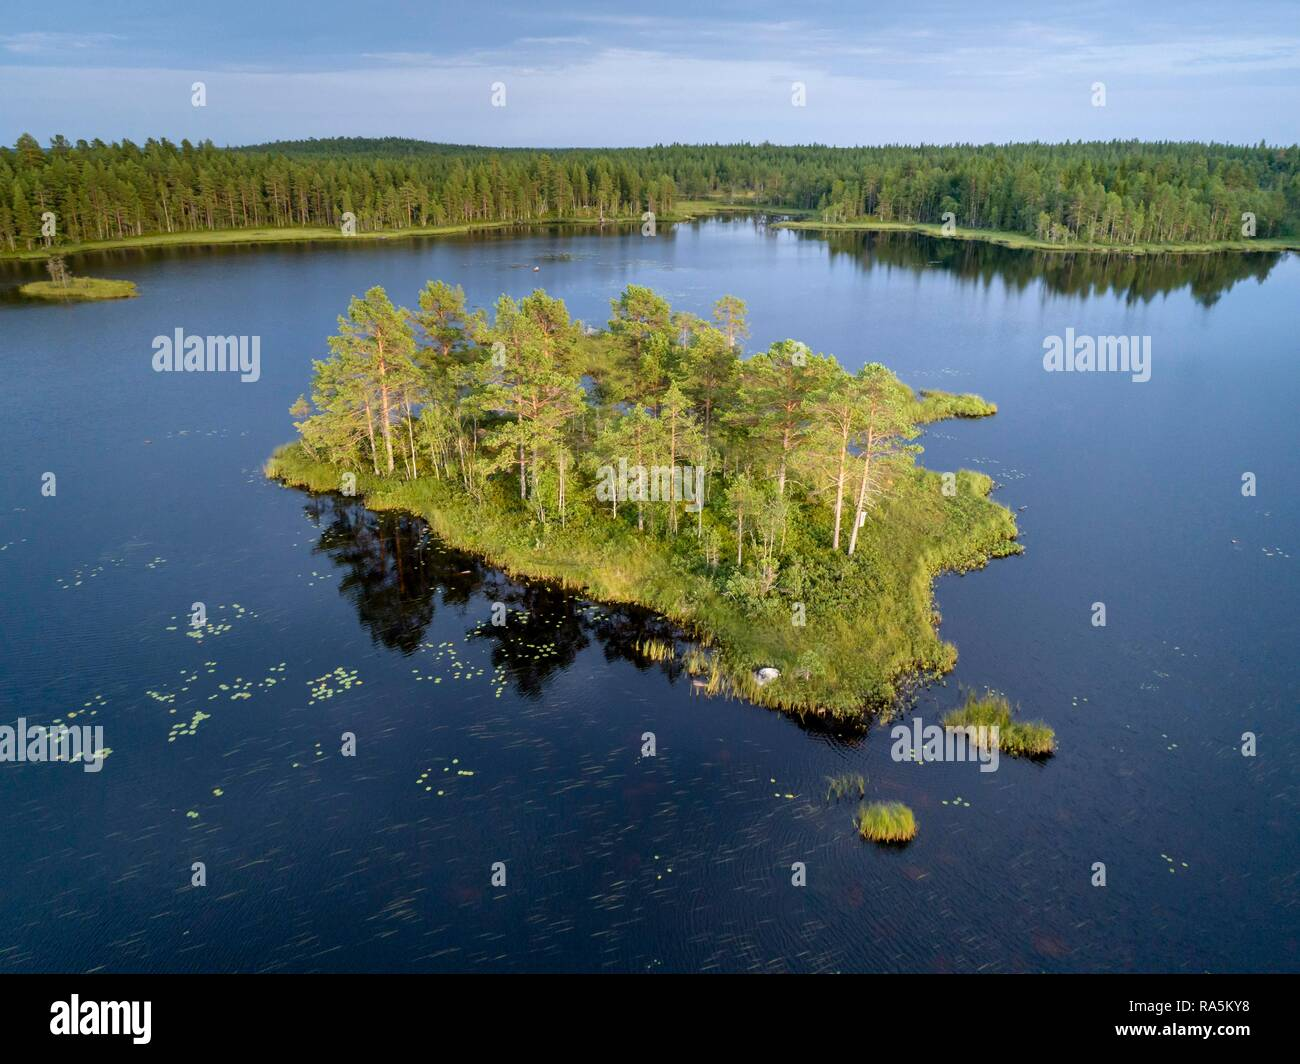 Drone shot, boreal, arctic conifers on small island in lake, water lily leaves, Jävre, Norbottens län, Sweden - Stock Image